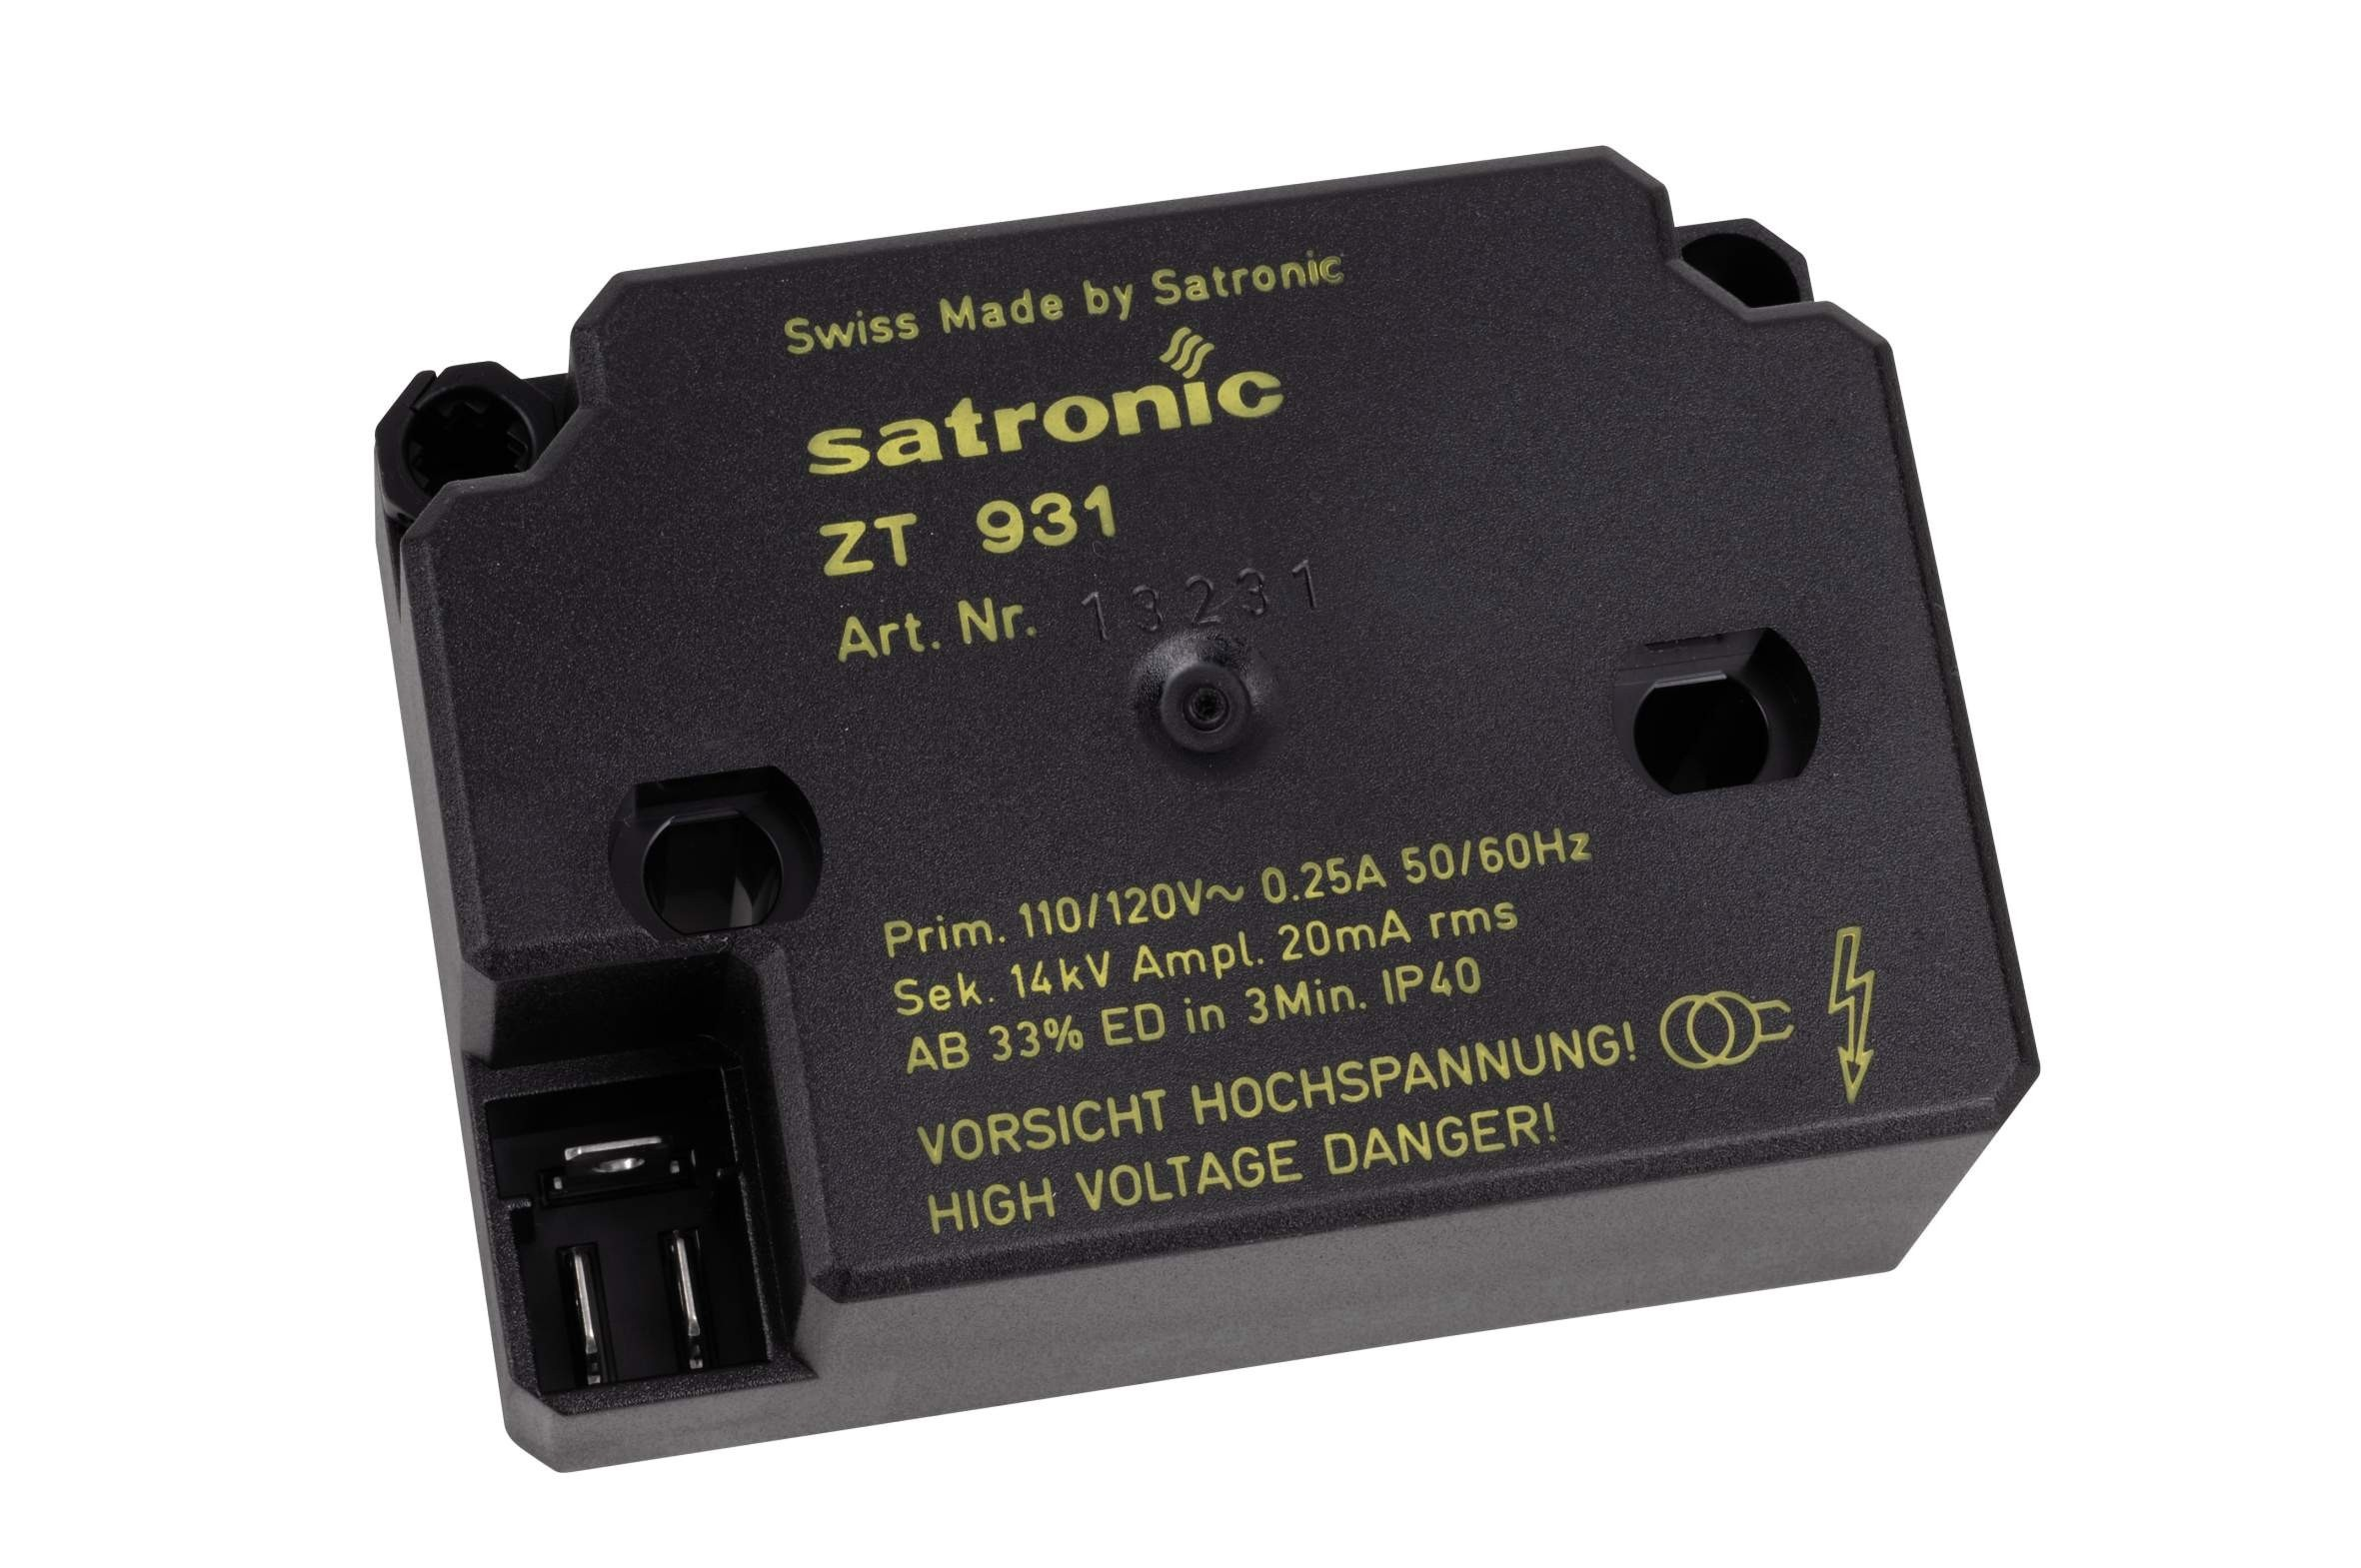 HONEYWELL SATRONIC ZT931 TRANSFORMER 230v SUITABLE FOR GAS